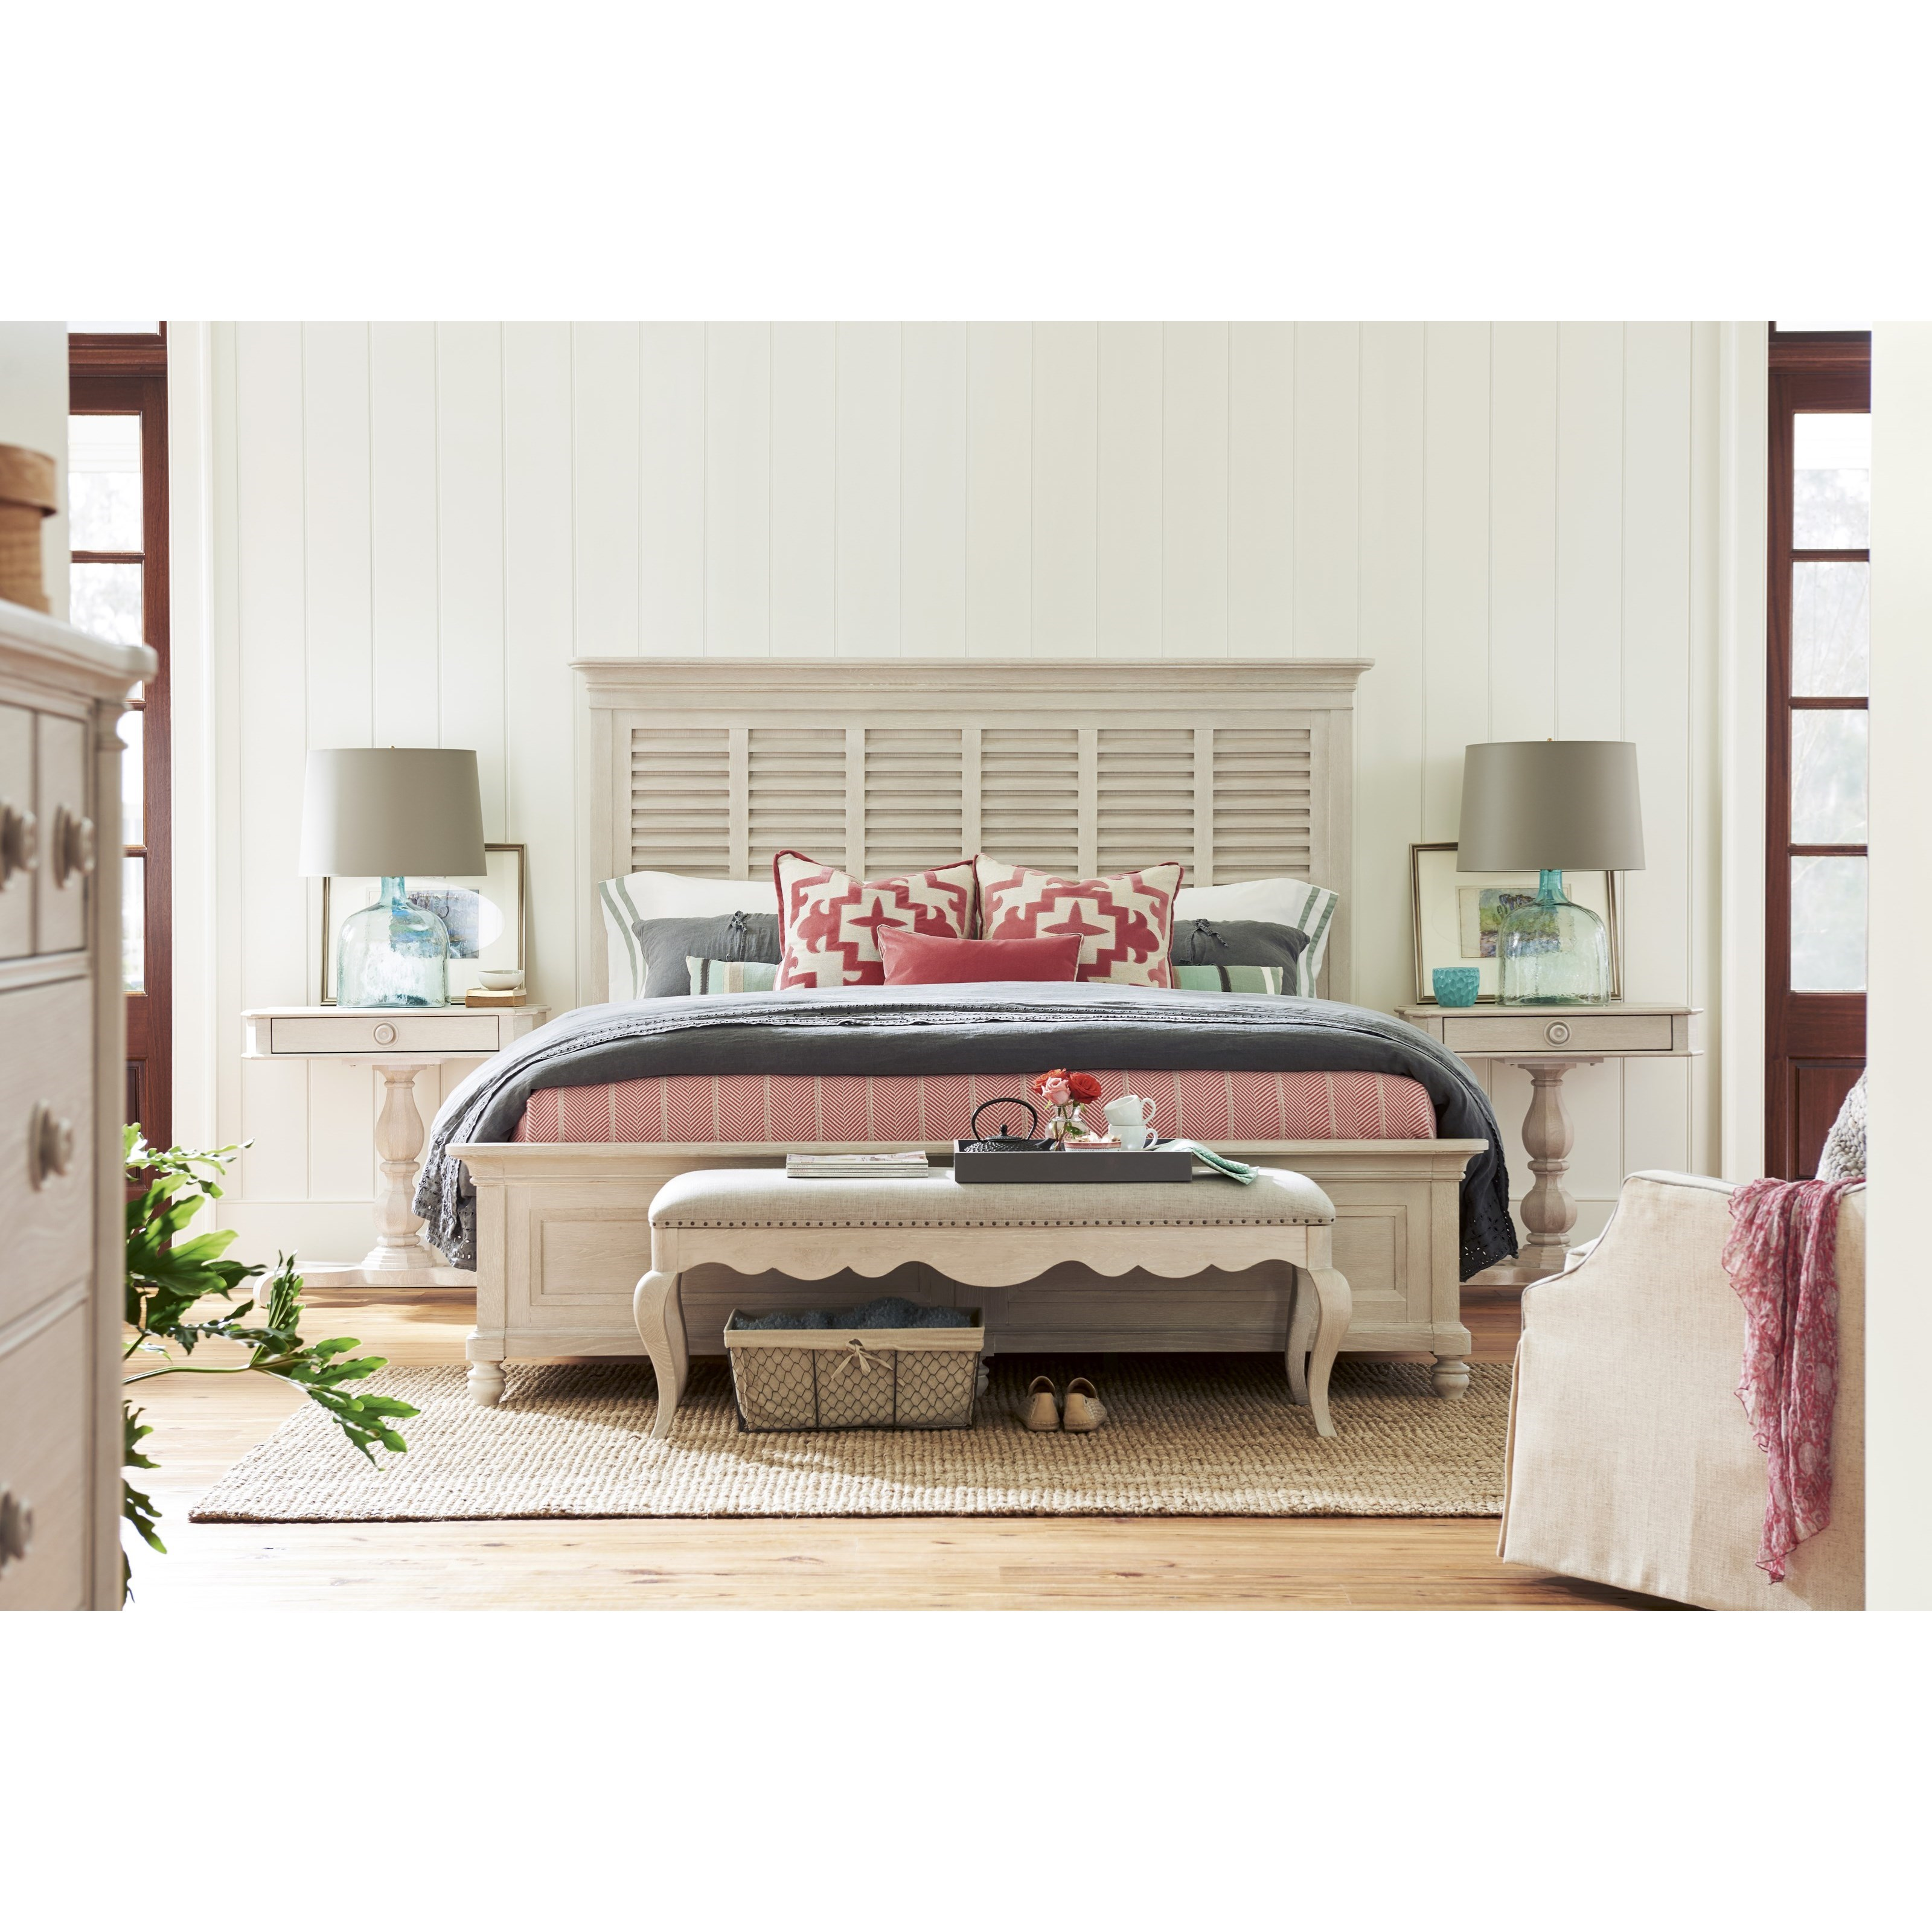 Paula Deen By Universal Bungalow Cottage King Bedroom